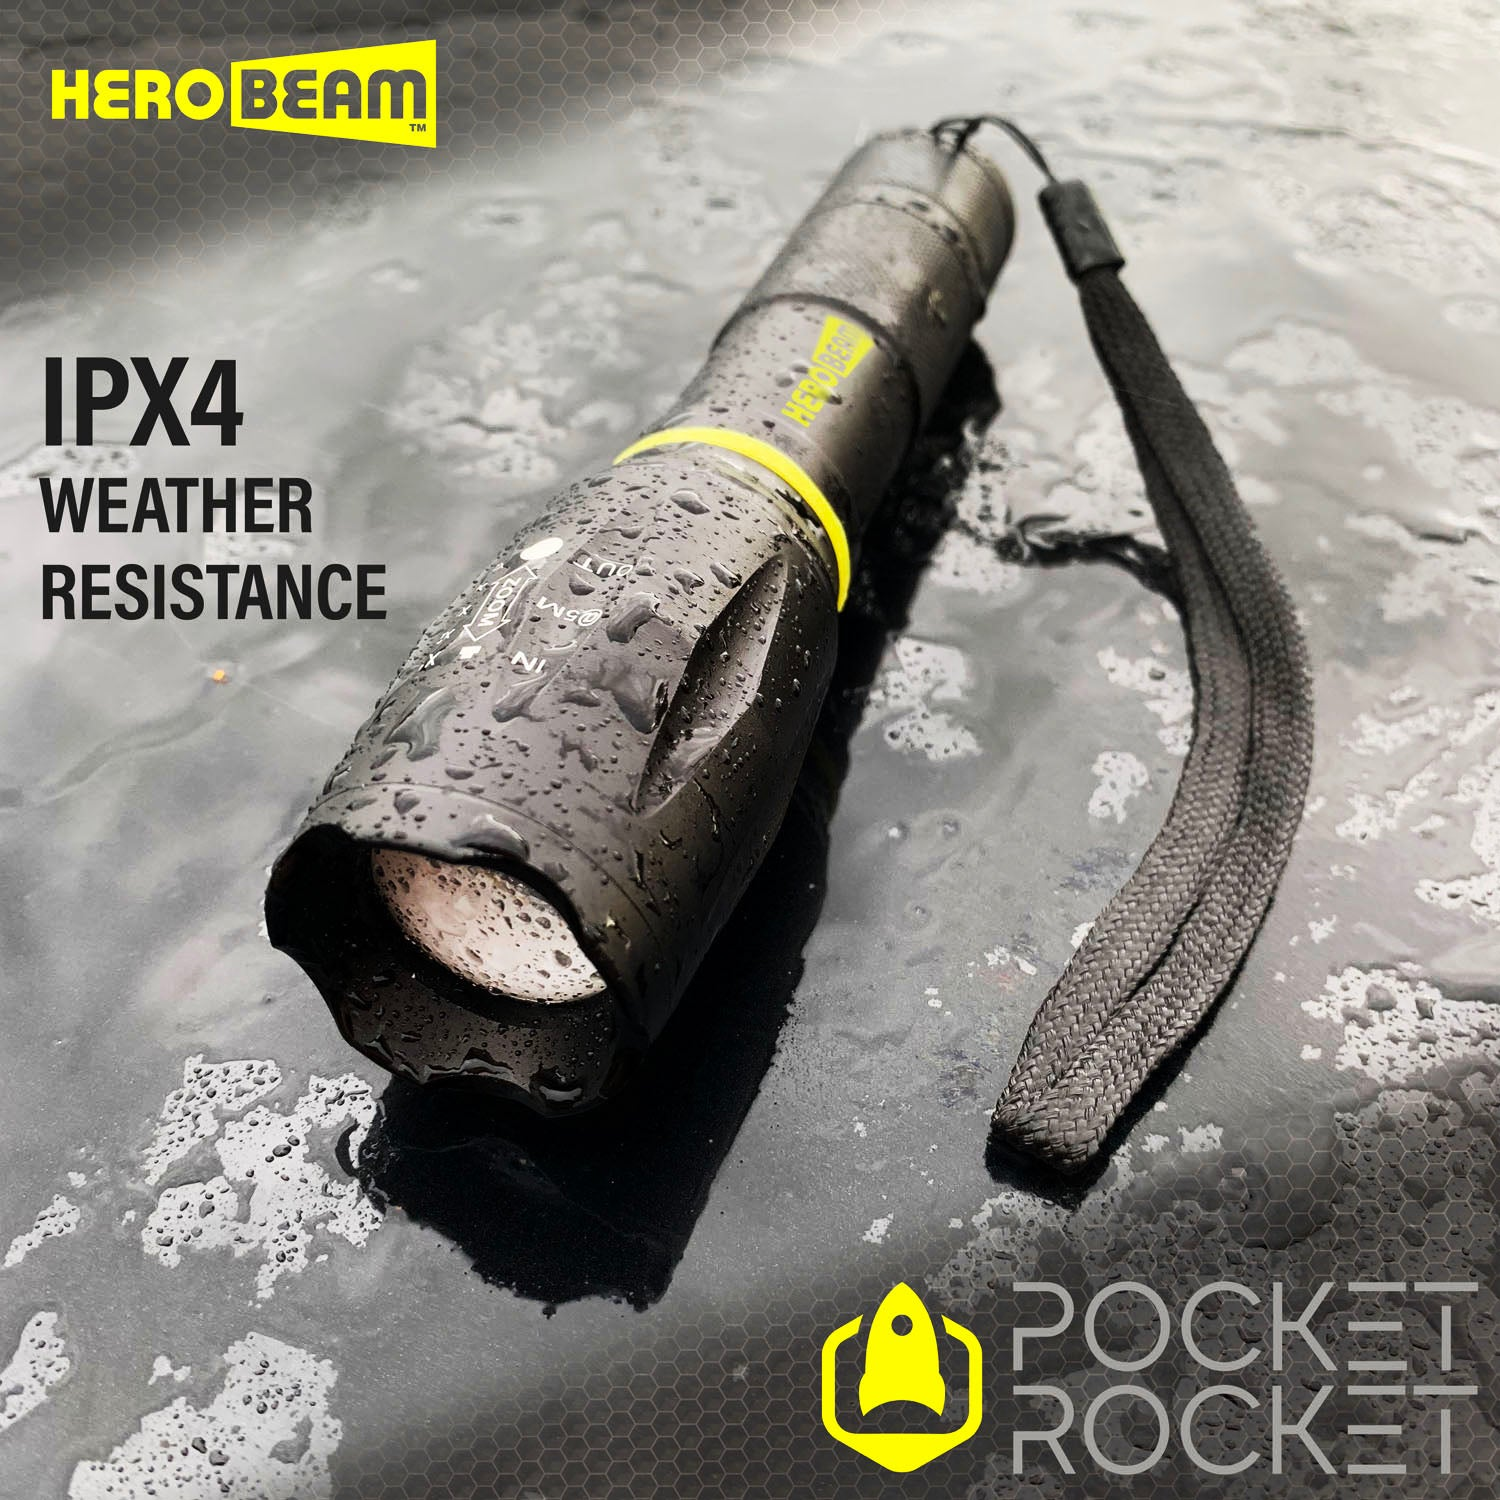 HEROBEAM® Pocket Rocket Tactical Flashlight